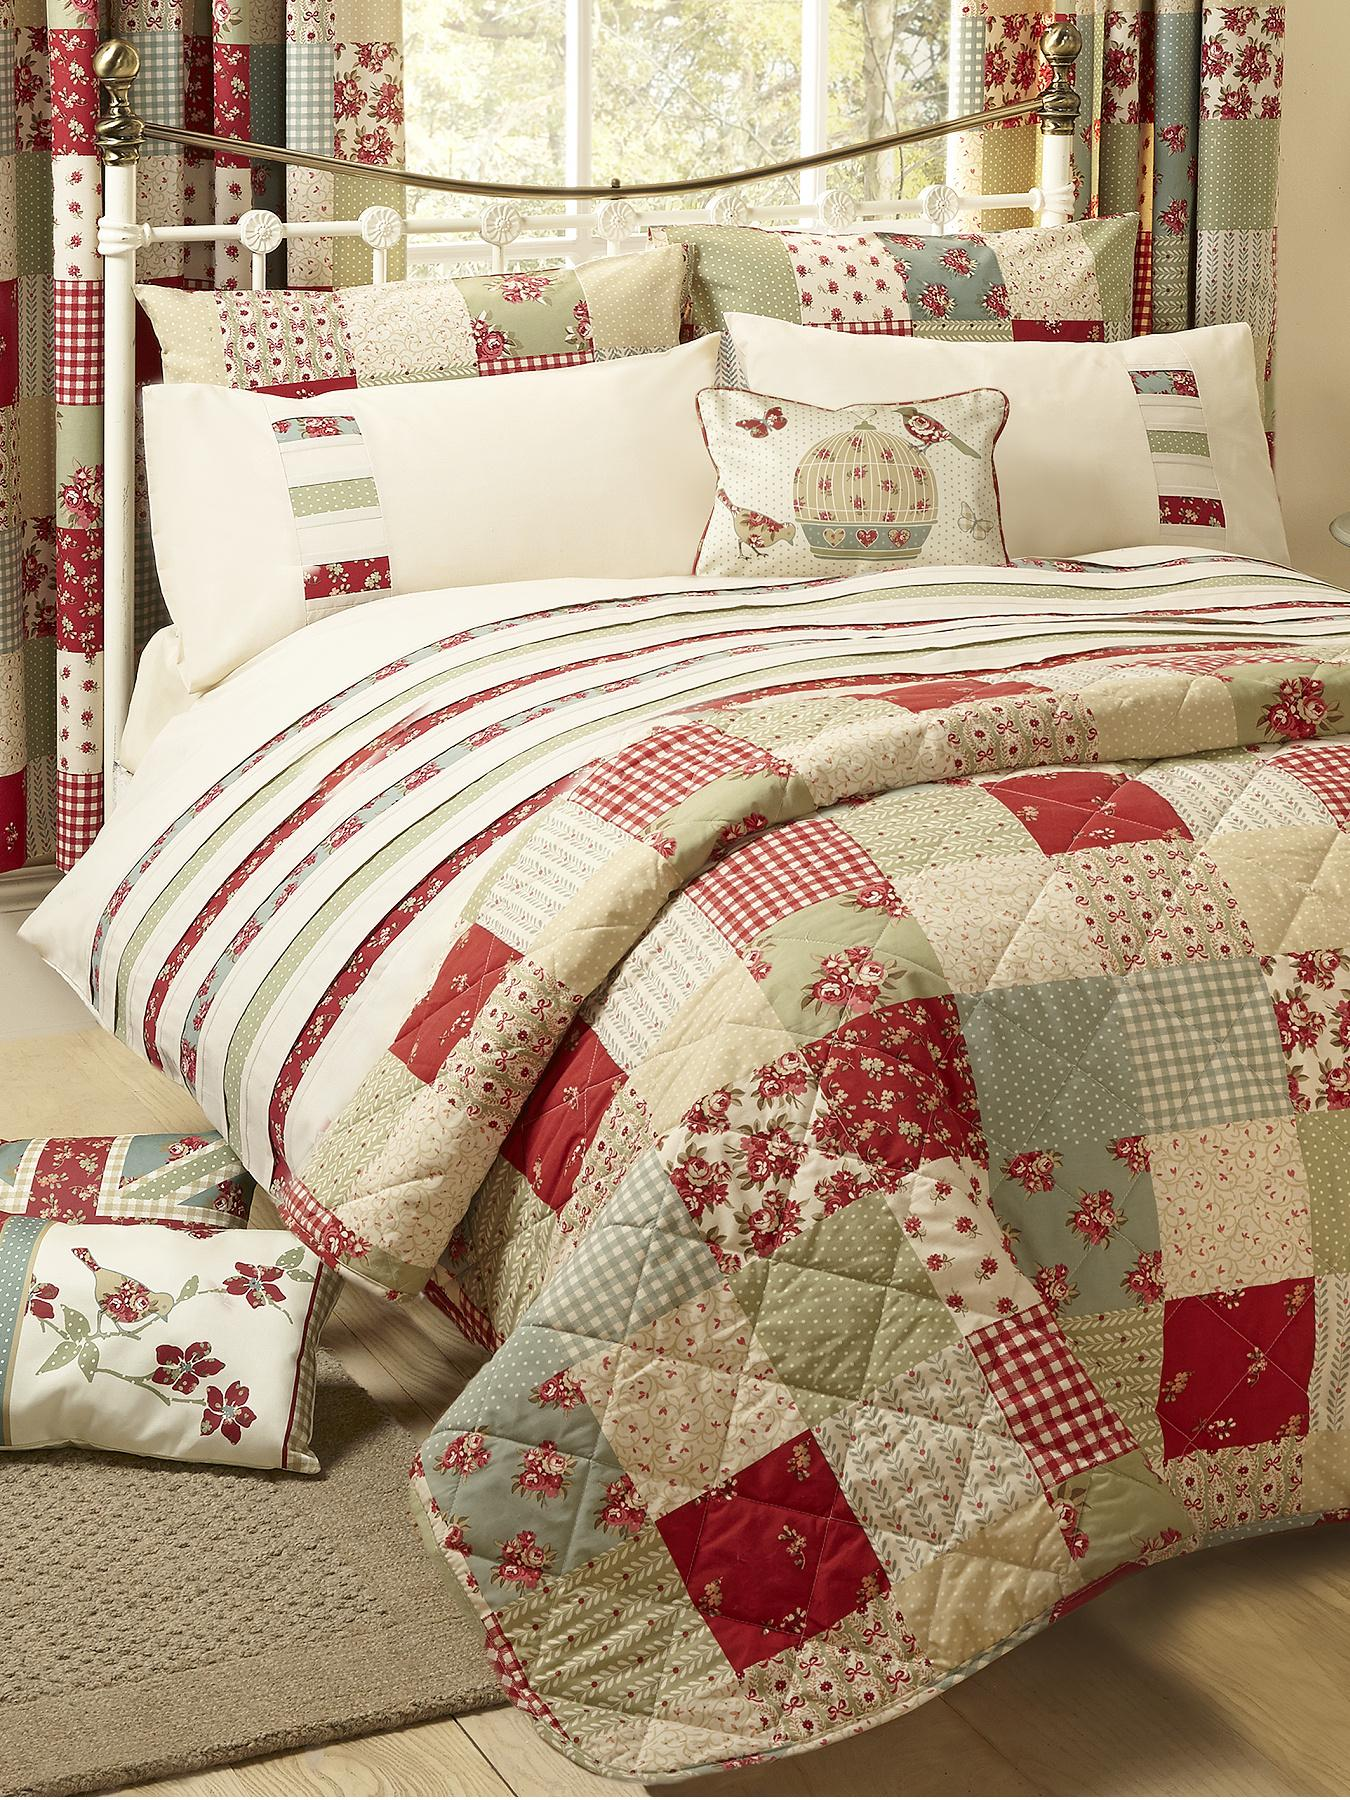 Patchwork Duvet Cover Price Comparison Results